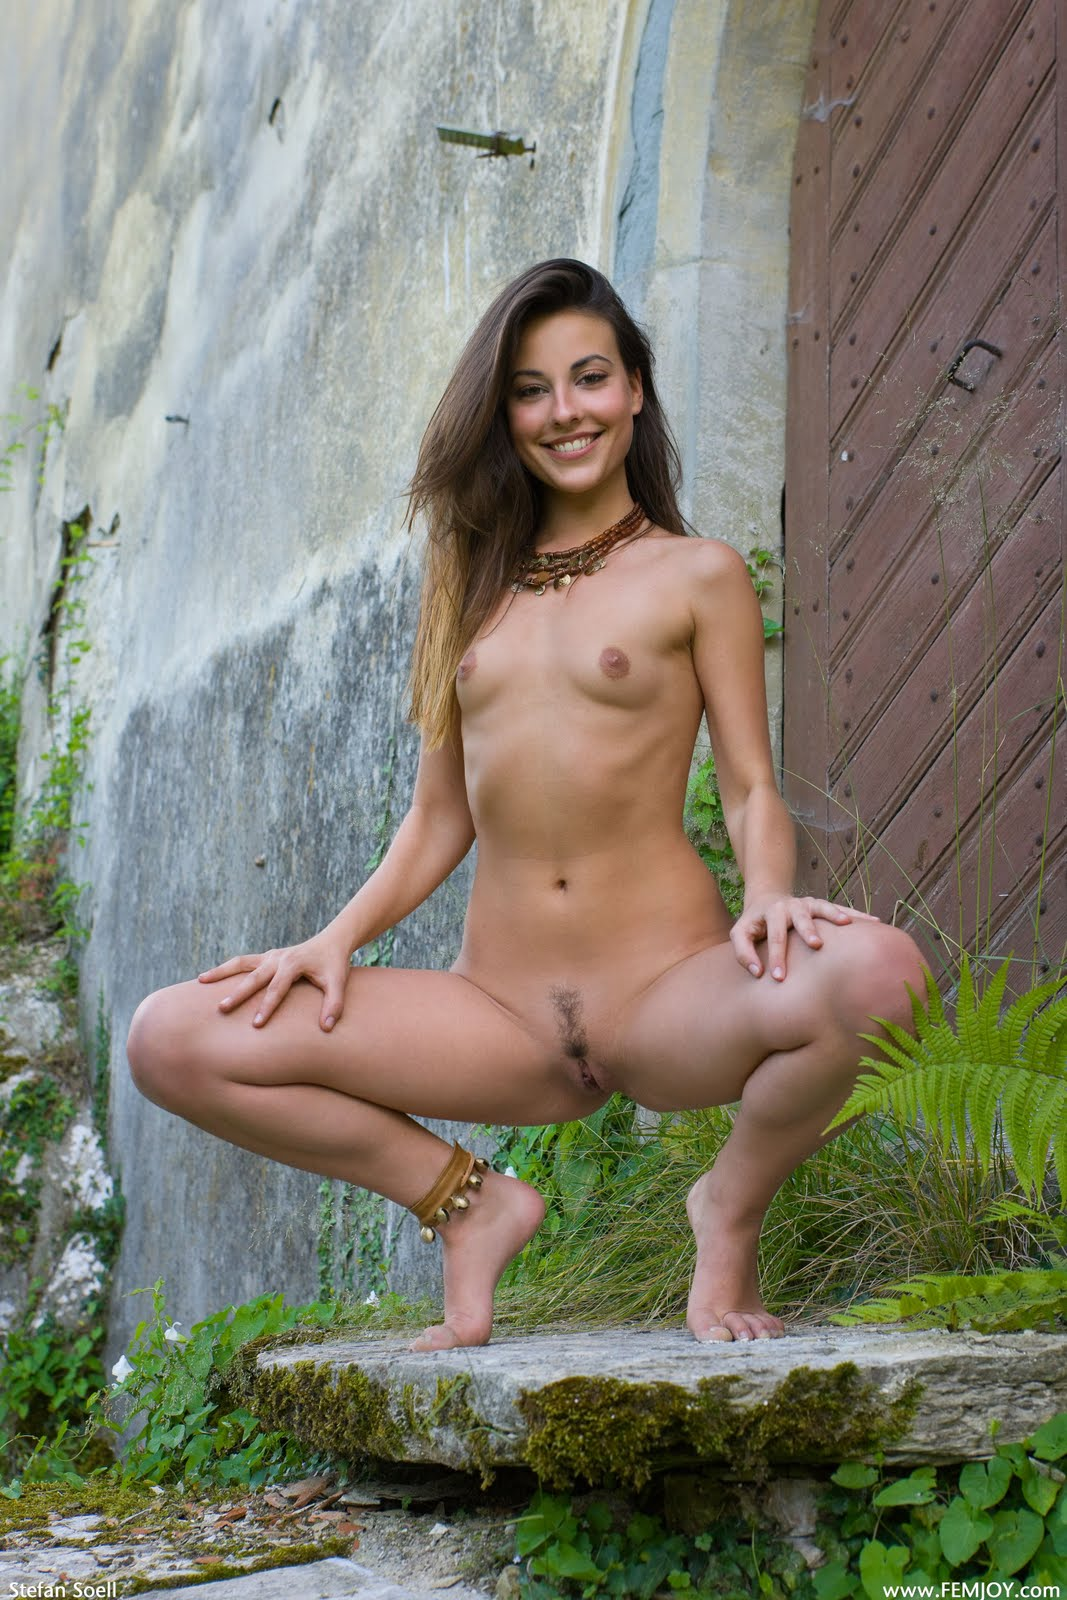 Love Them Whites 14: Lorena G - Watch This (FEMJOY) - HOT ...